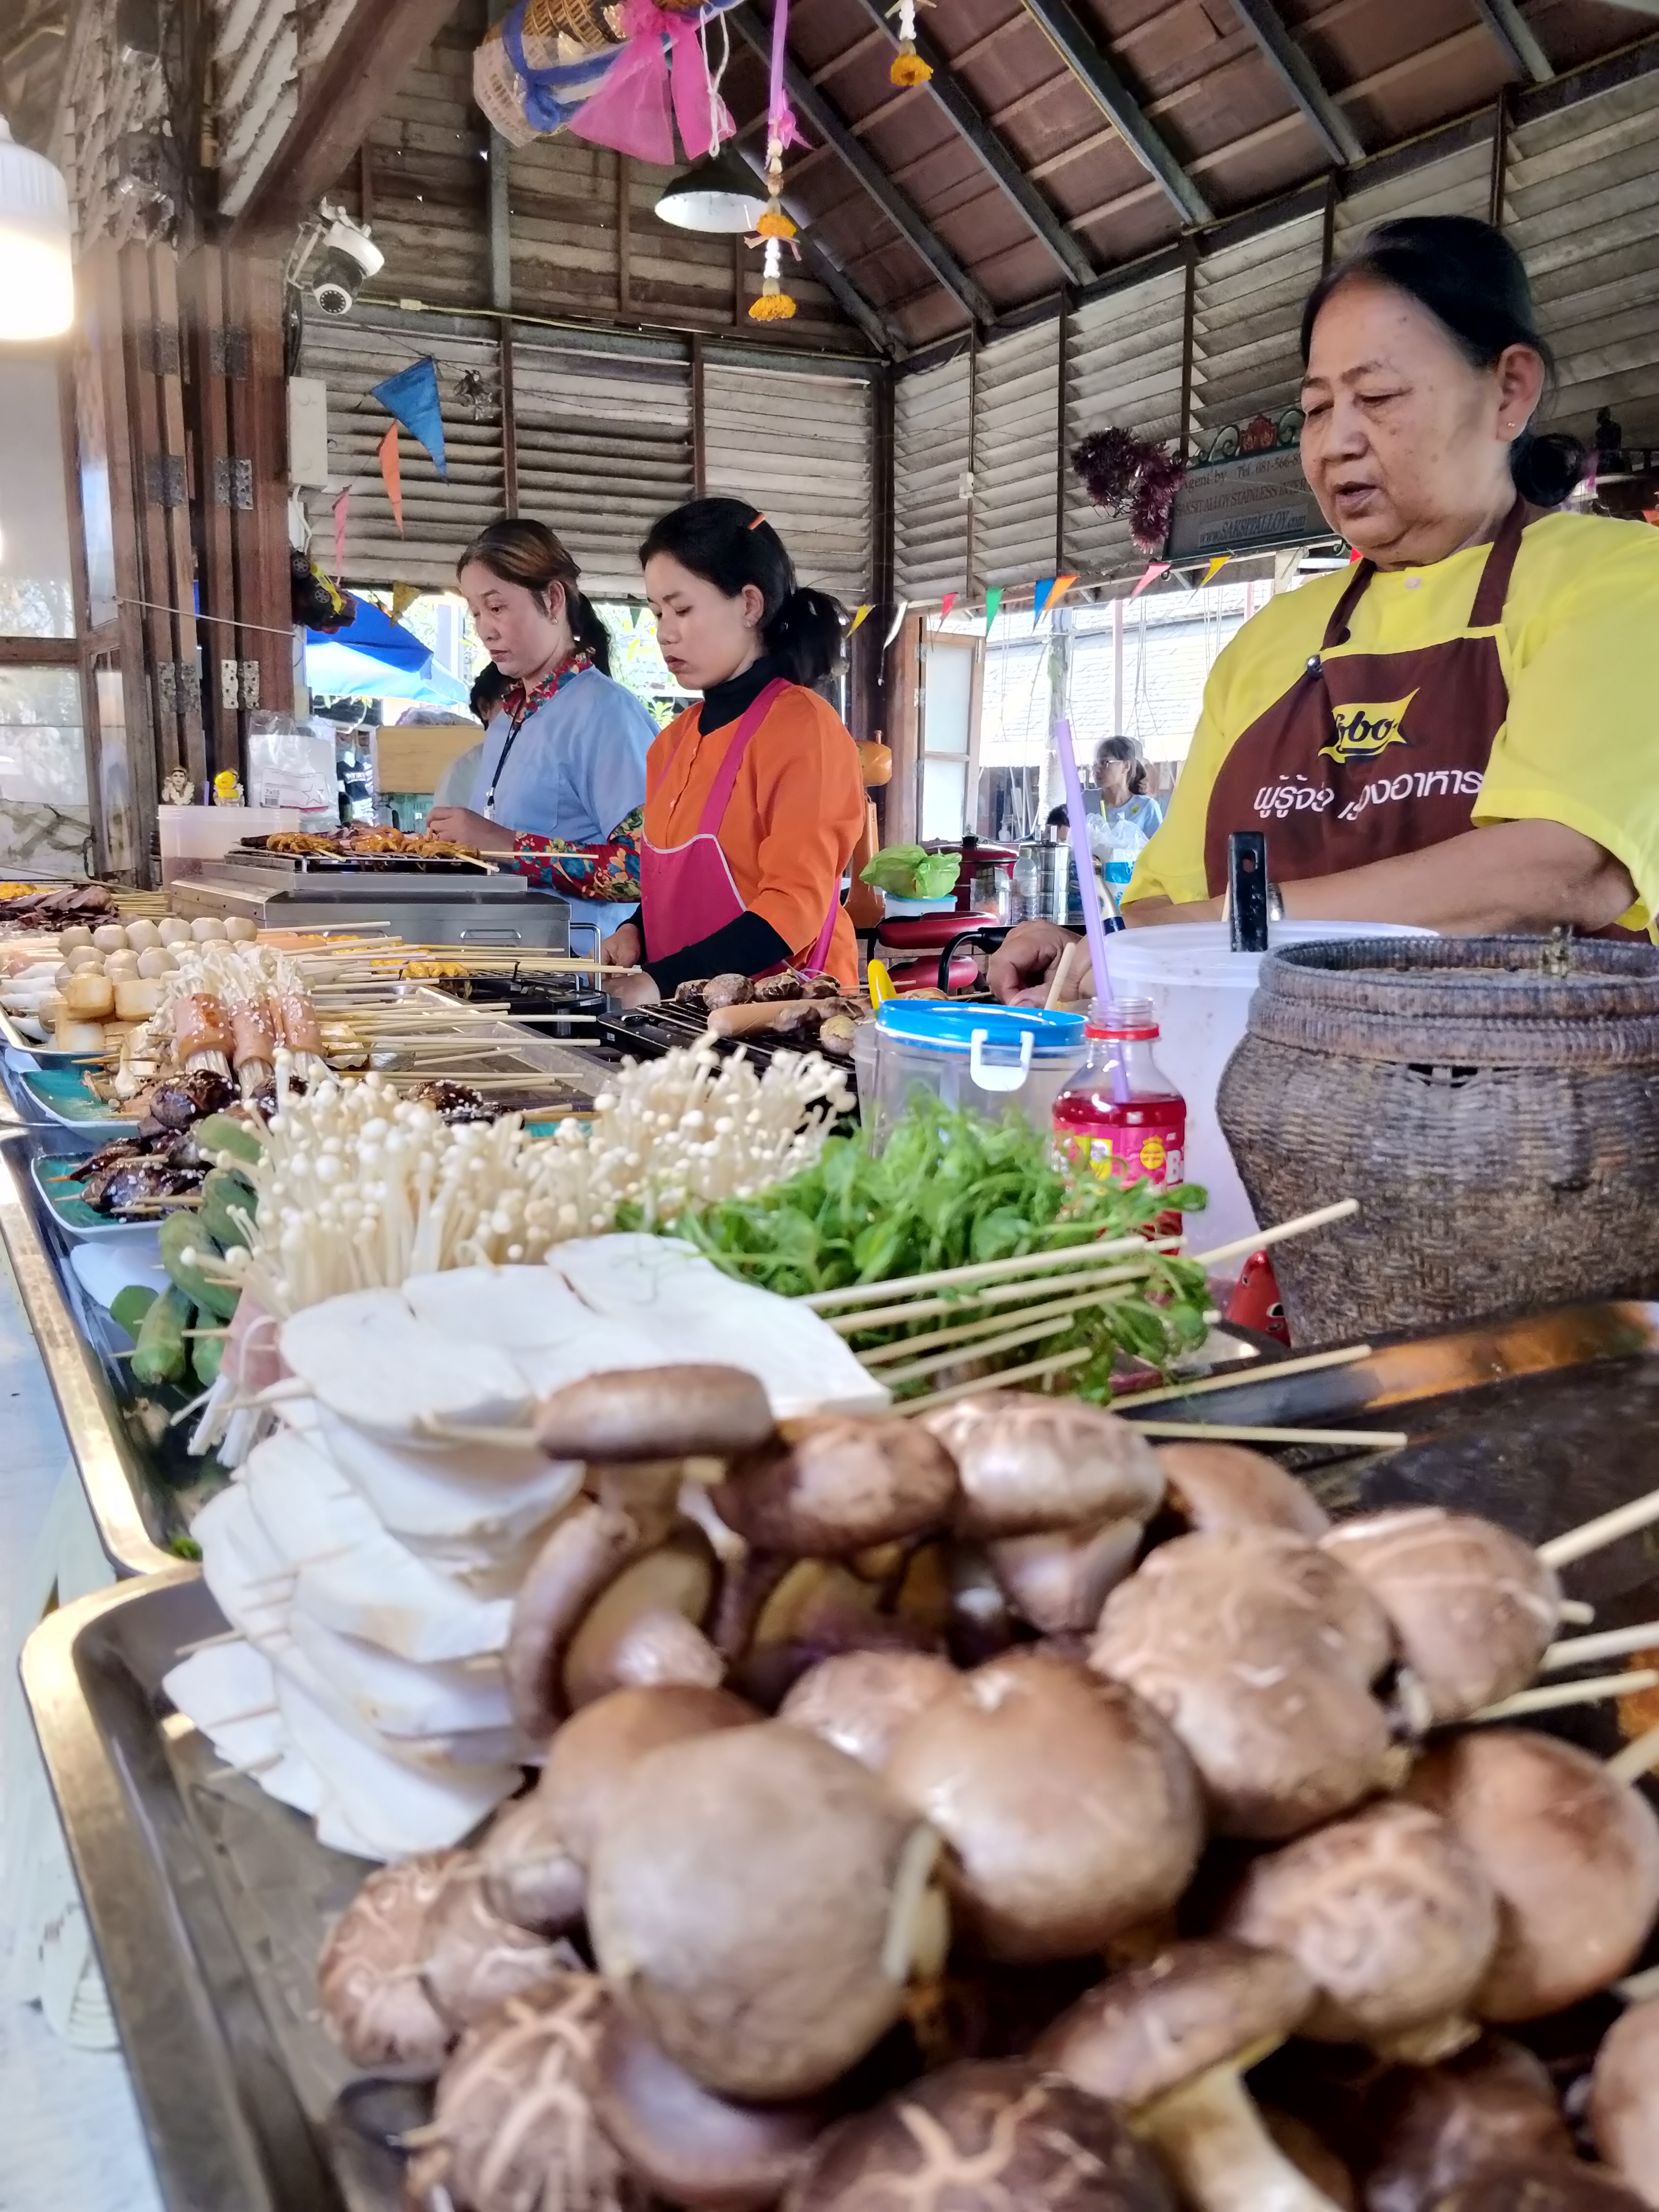 the view of the local food stalls in the Pattaya Floating Market, Thailand